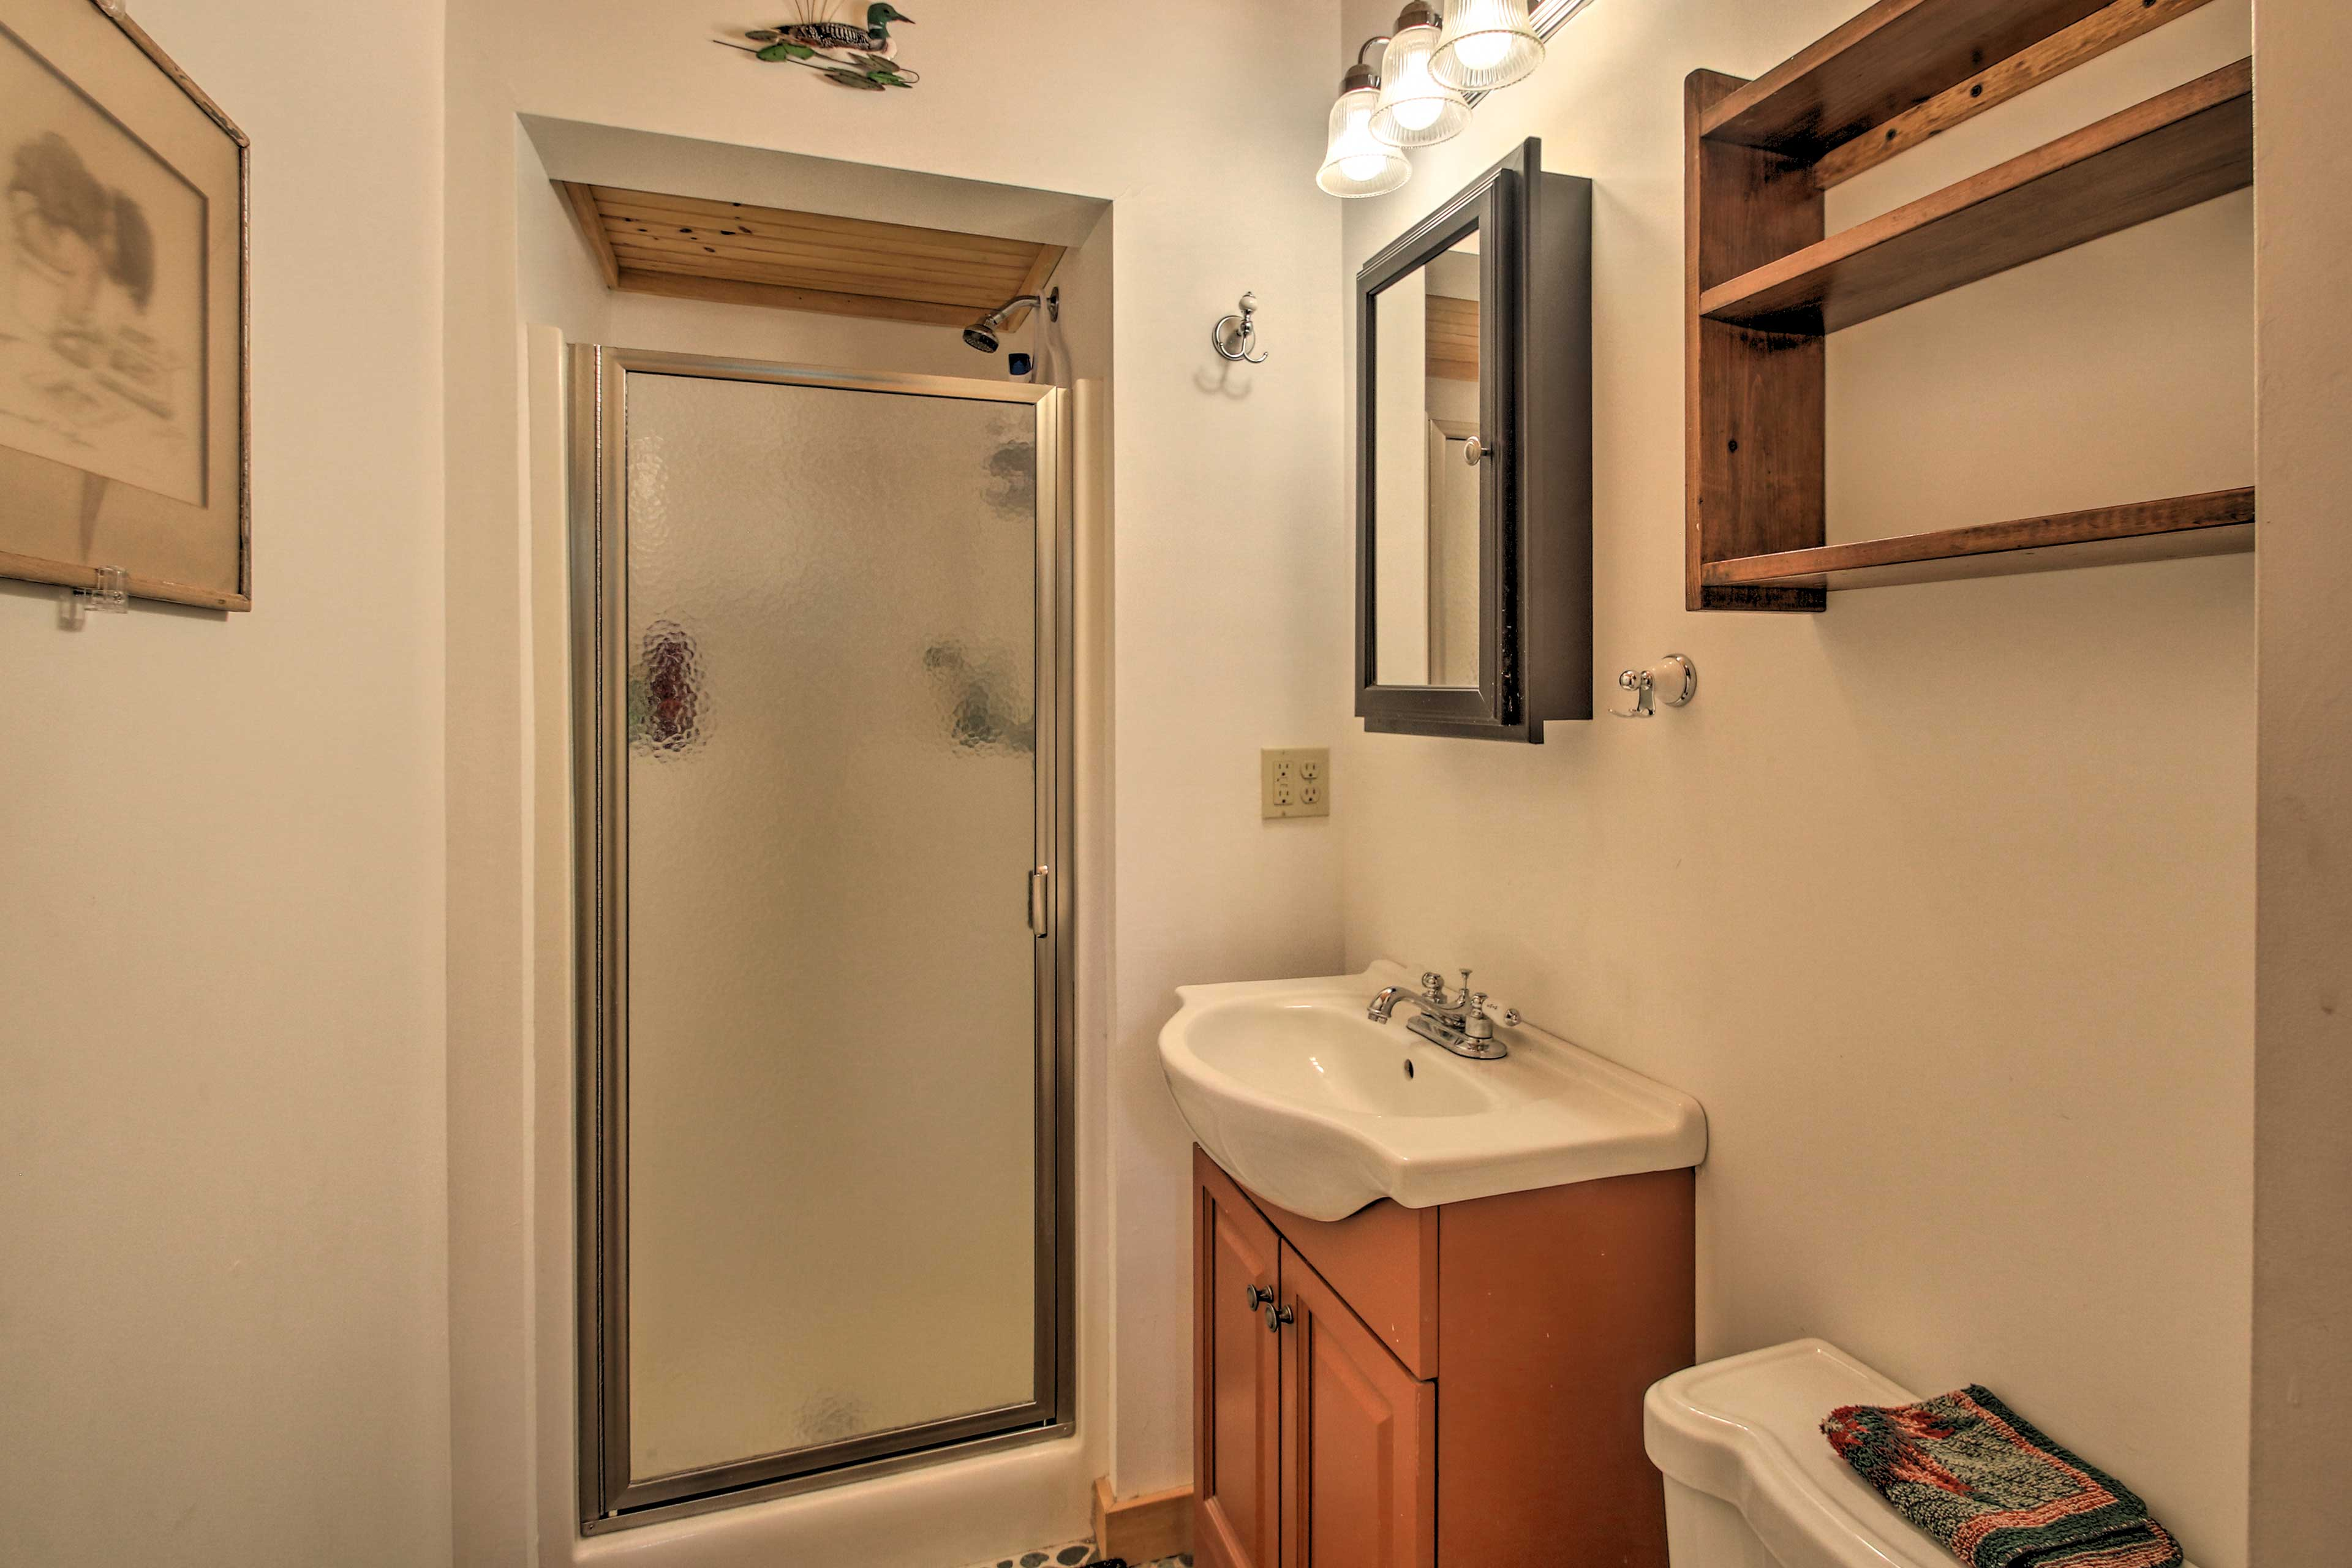 Wake up with a refreshing shower in this full bathroom!